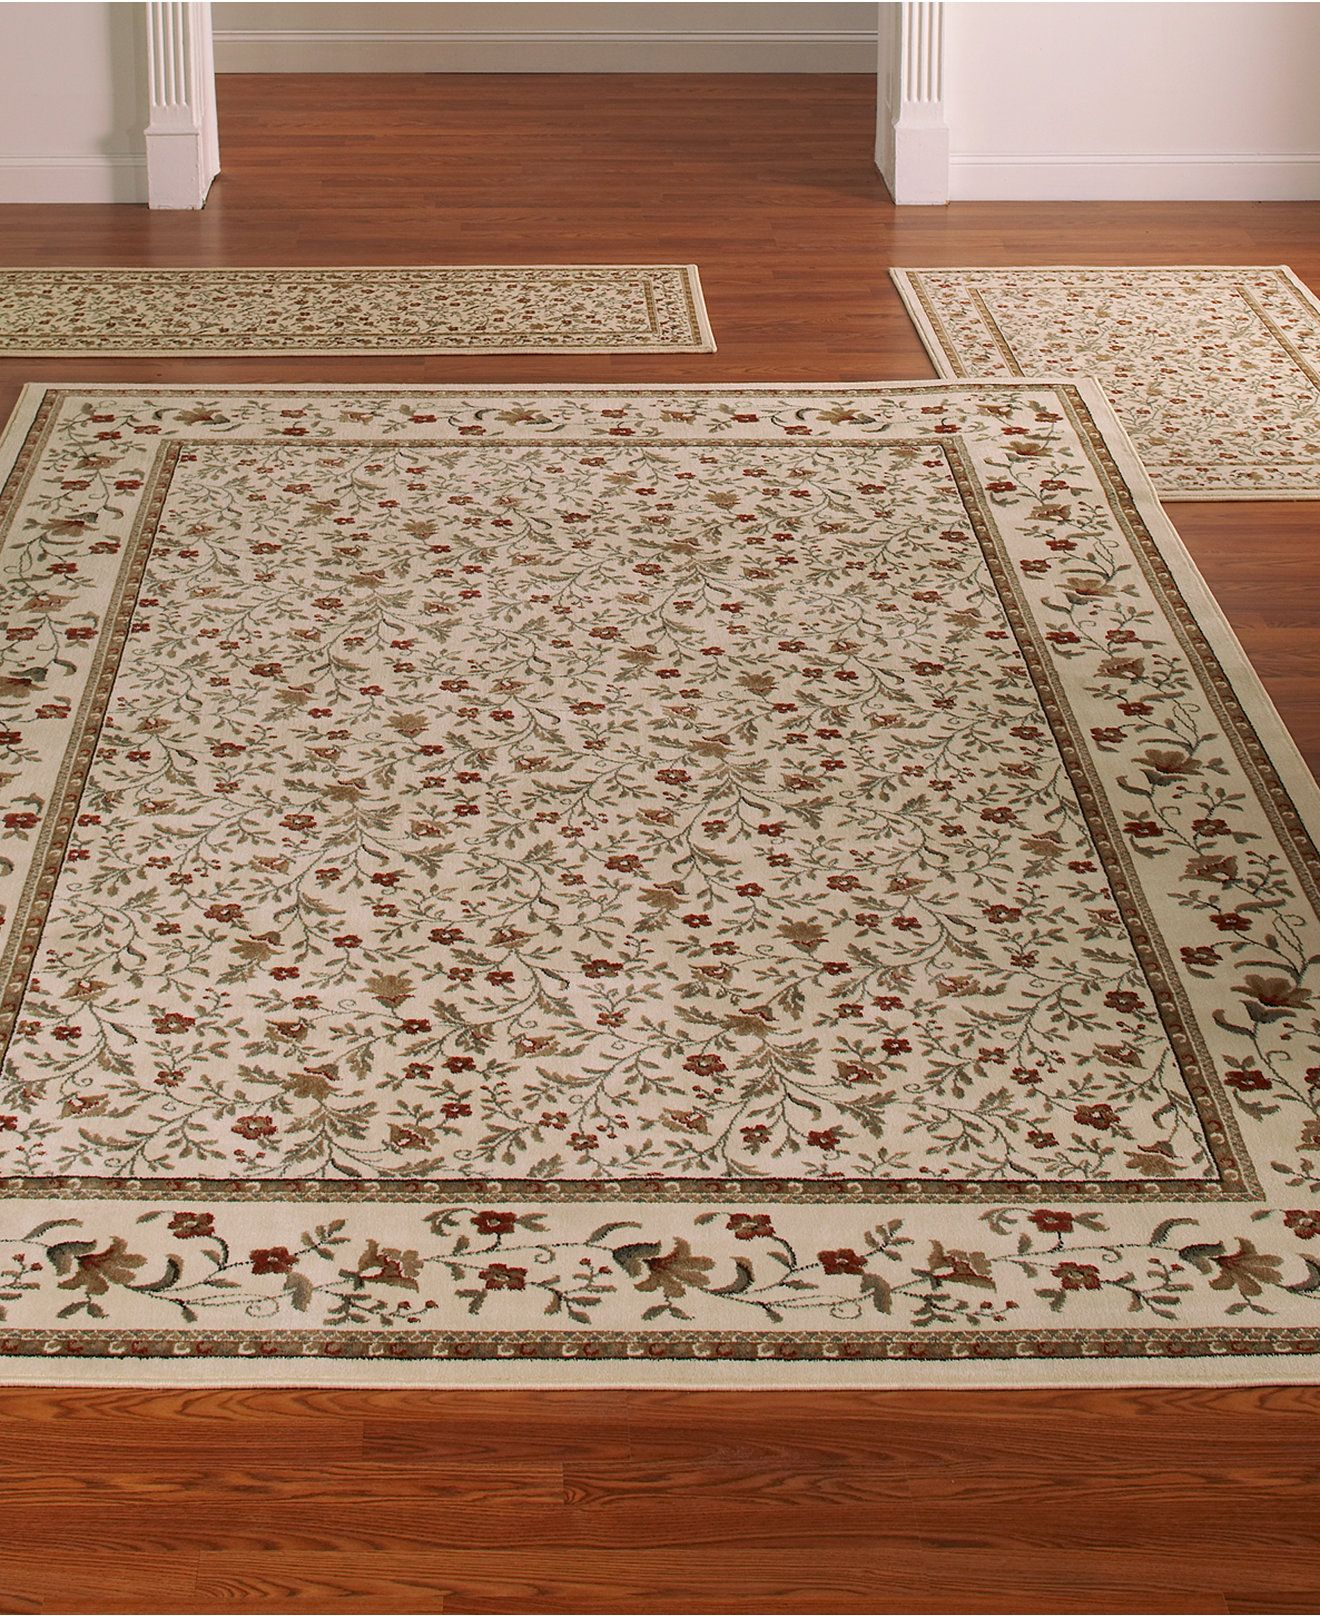 Area Rugs 8x10 Cheap Area Rugs 8x10